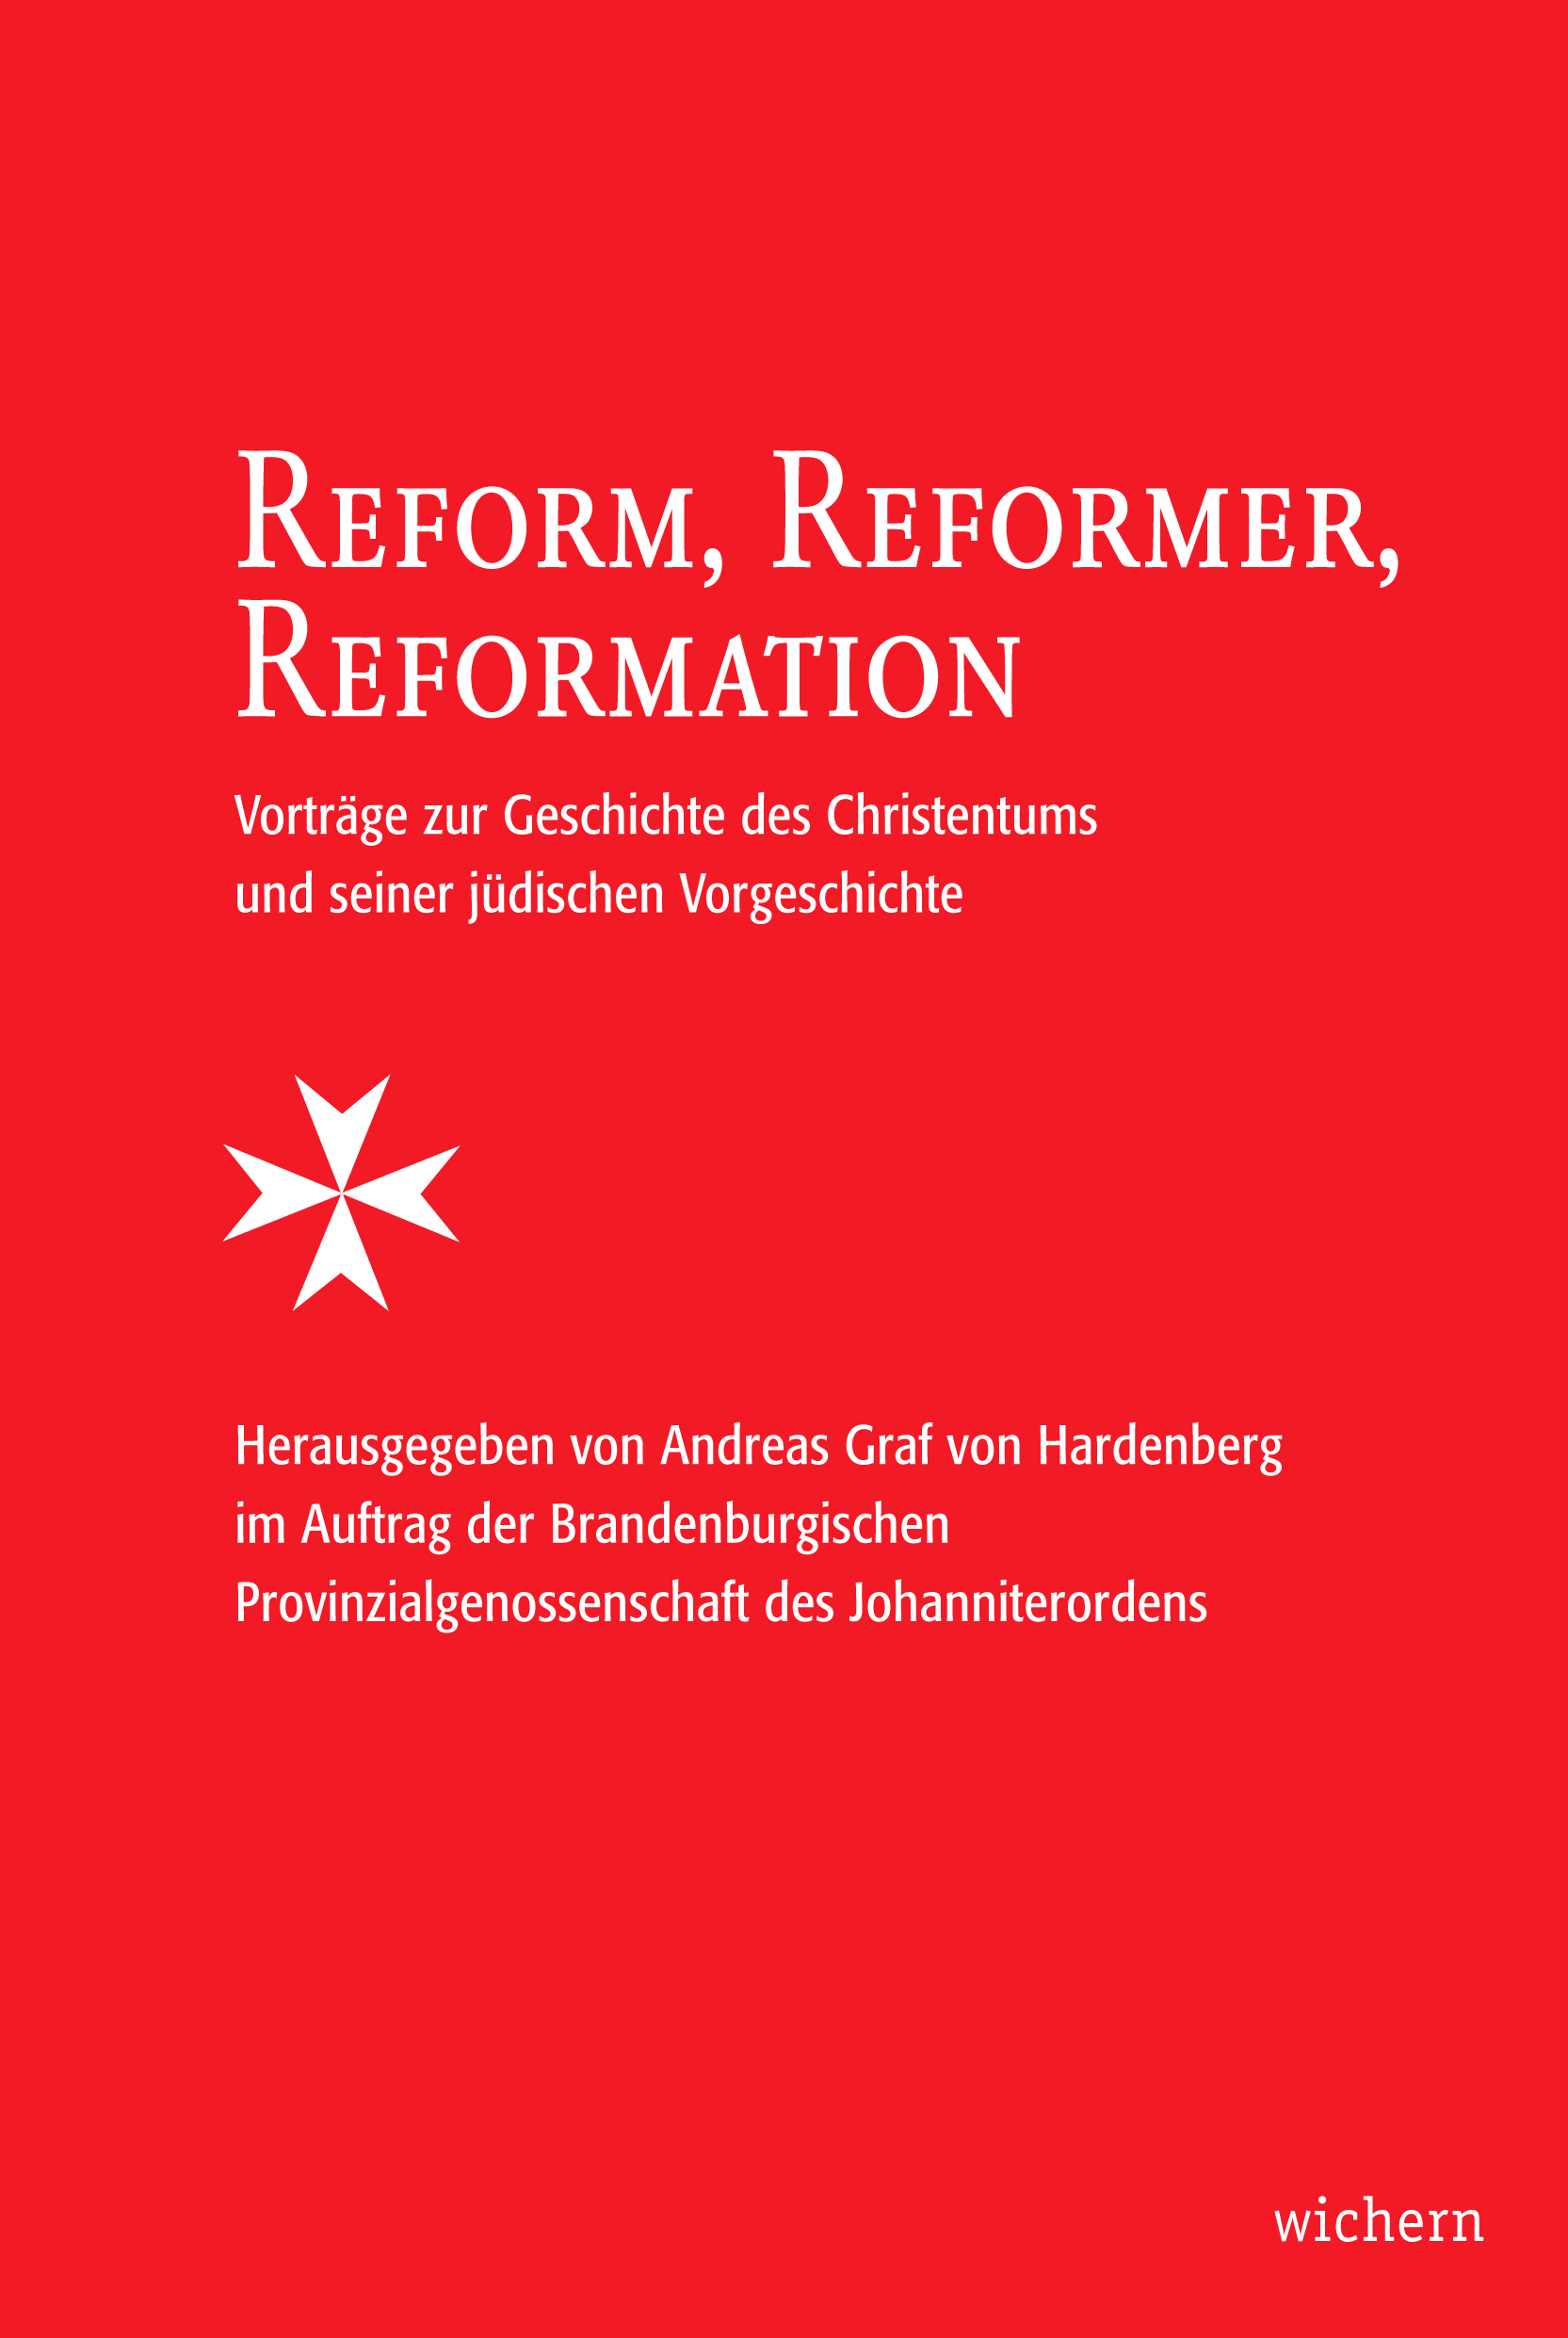 Cover Buch Reform, Reformer, Reformation